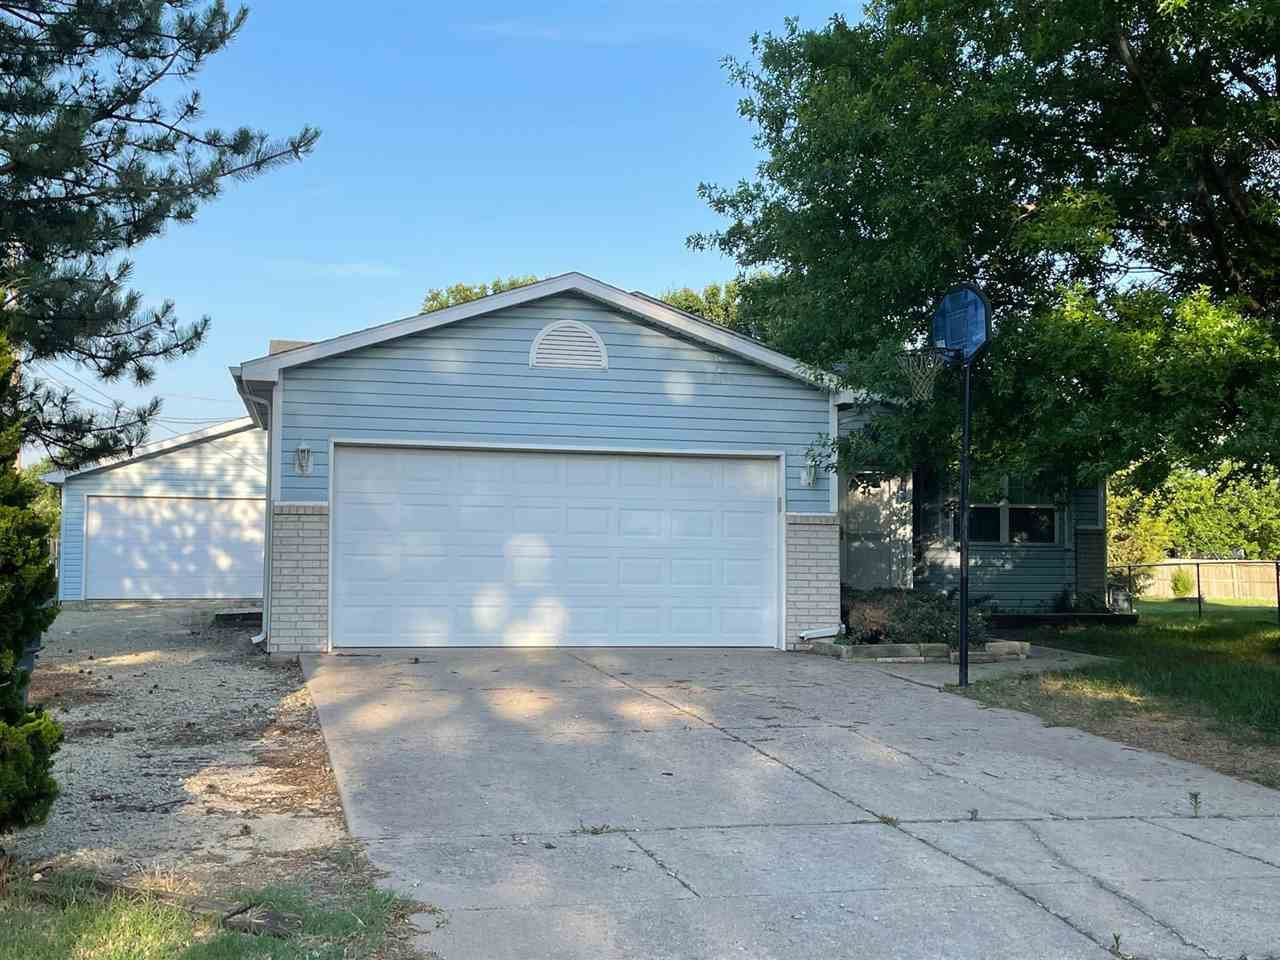 BONUS DETACHED 24x24 GARAGE/WORKSHOP/MANCAVE with 220 electric service accompanies this move in read